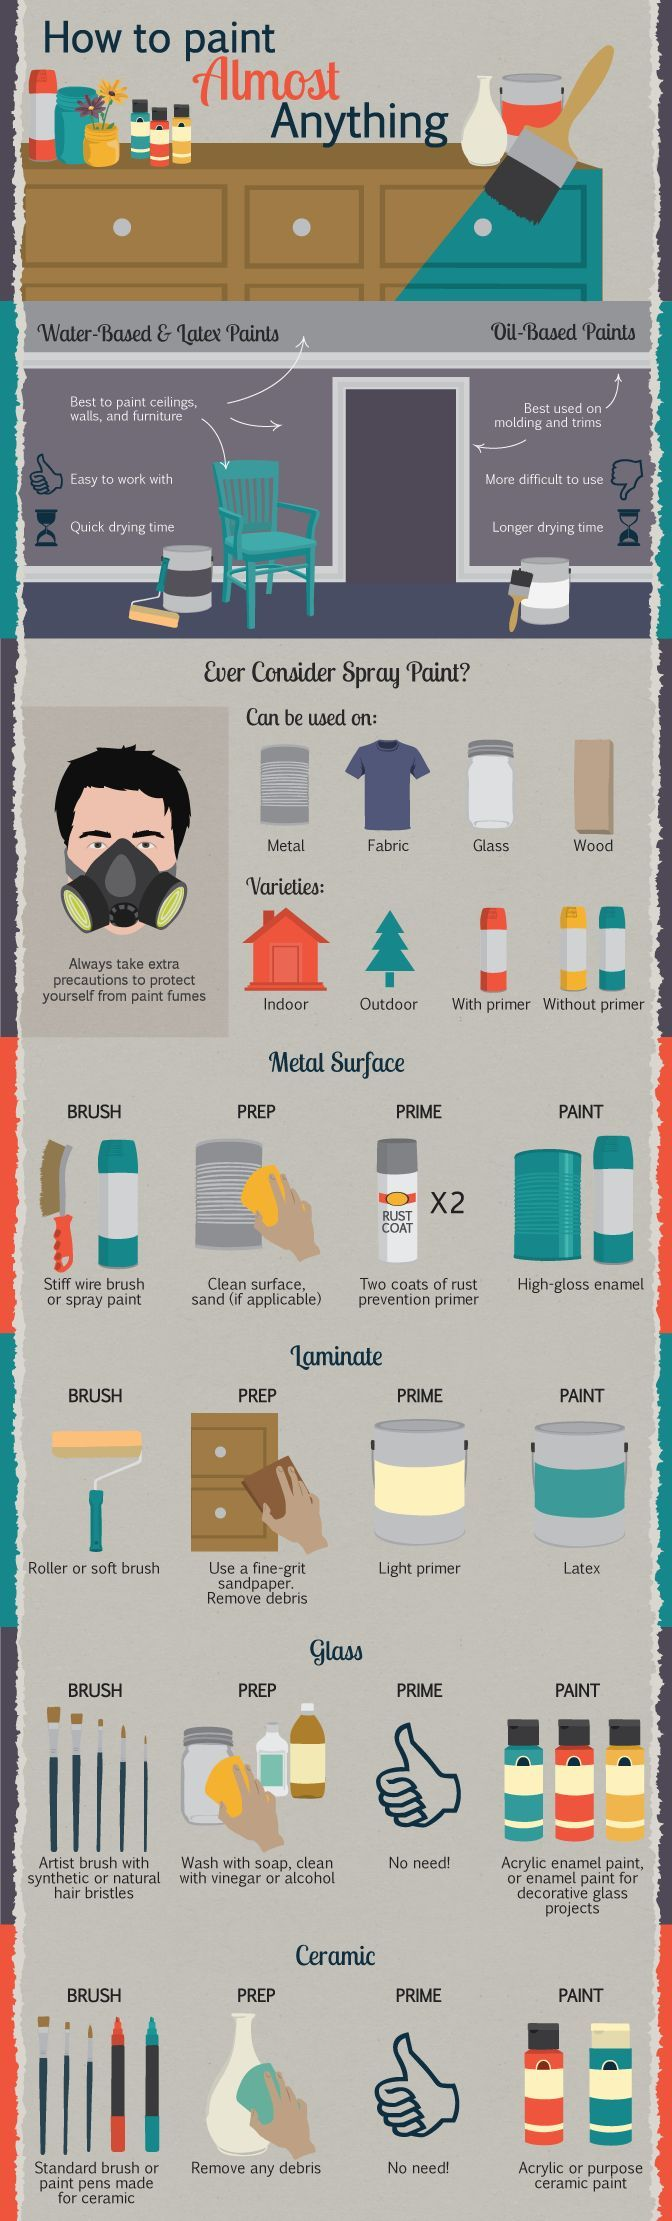 Learn to Paint Anything in Your Home [Infographic] Save Hundreds Of Bucks with these Easy Tips and Tricks.